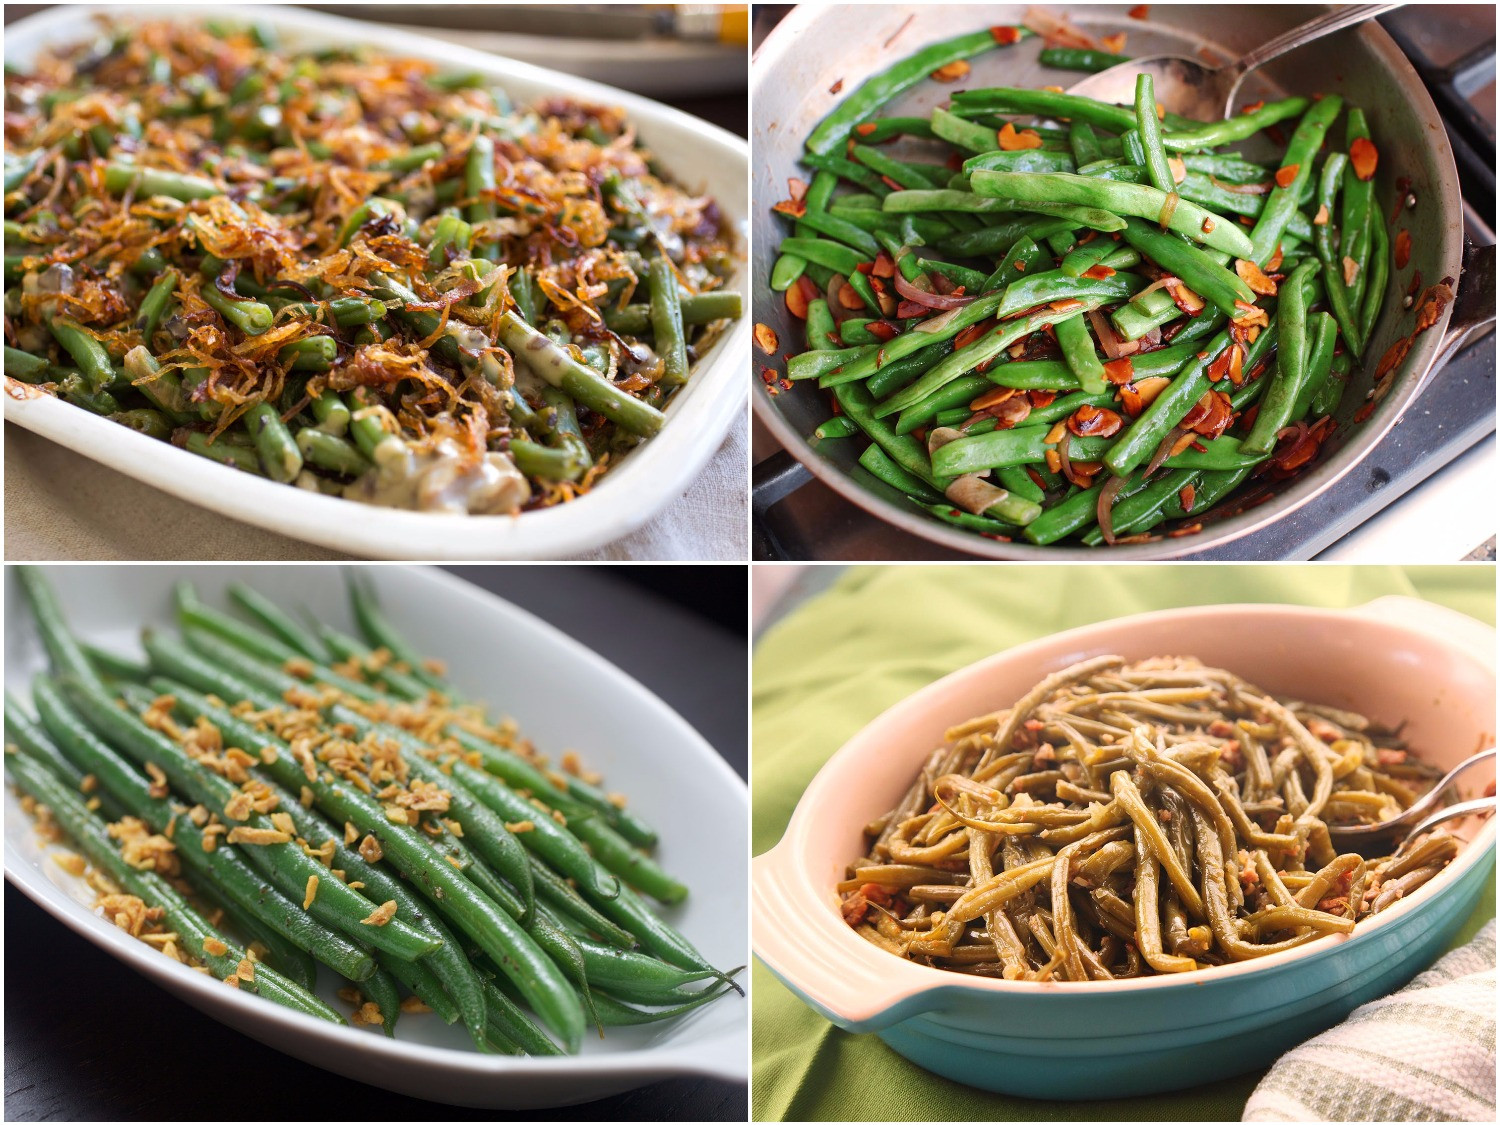 Green Bean Recipes For Thanksgiving  10 Thanksgiving Green Bean Recipes No Cans Required